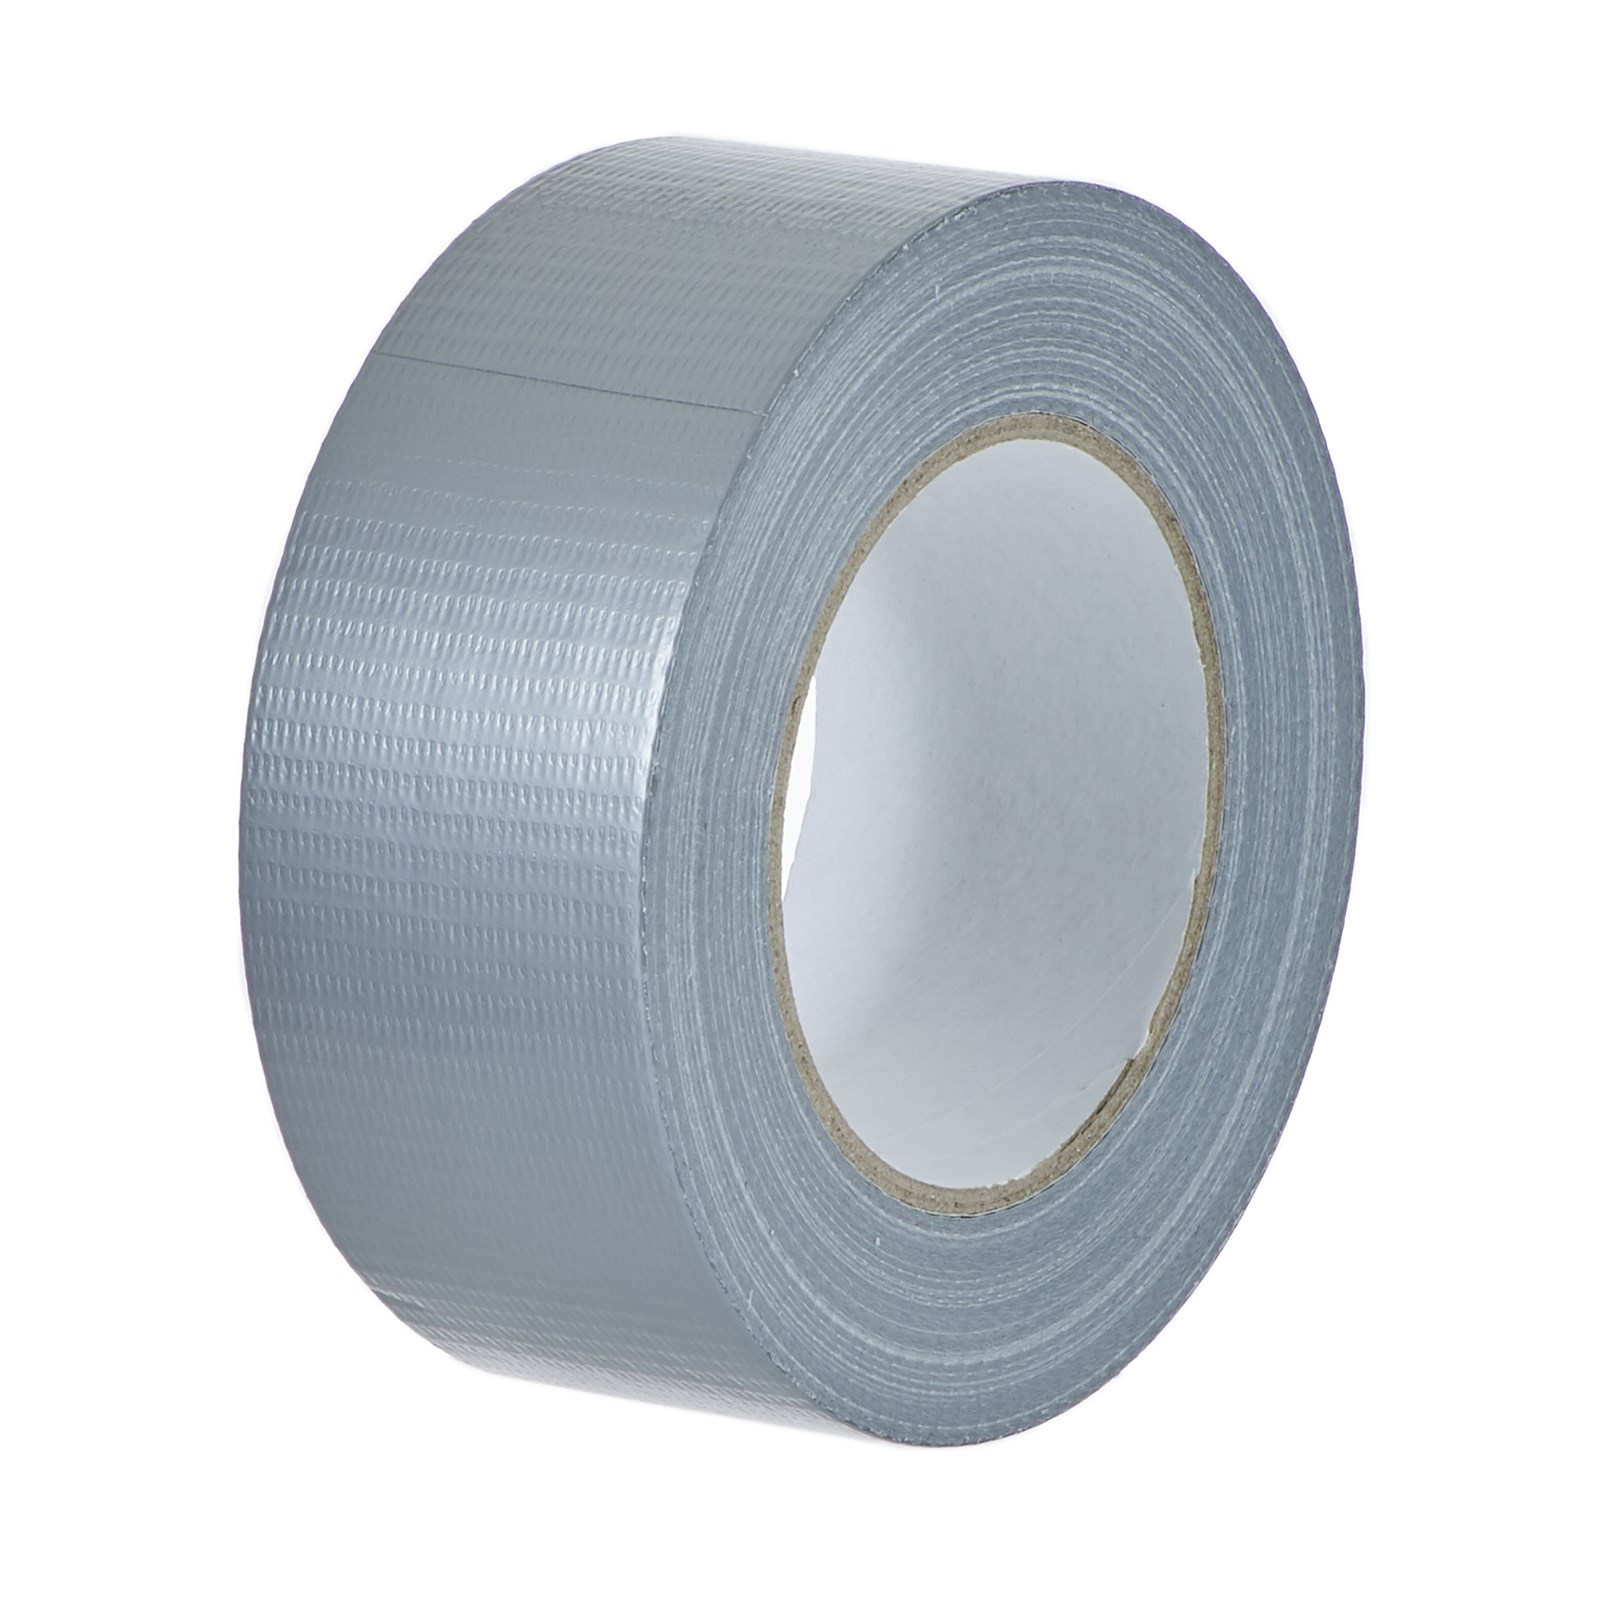 Contemporary Waterproof Tape For Showers Elaboration - Bathroom and ...